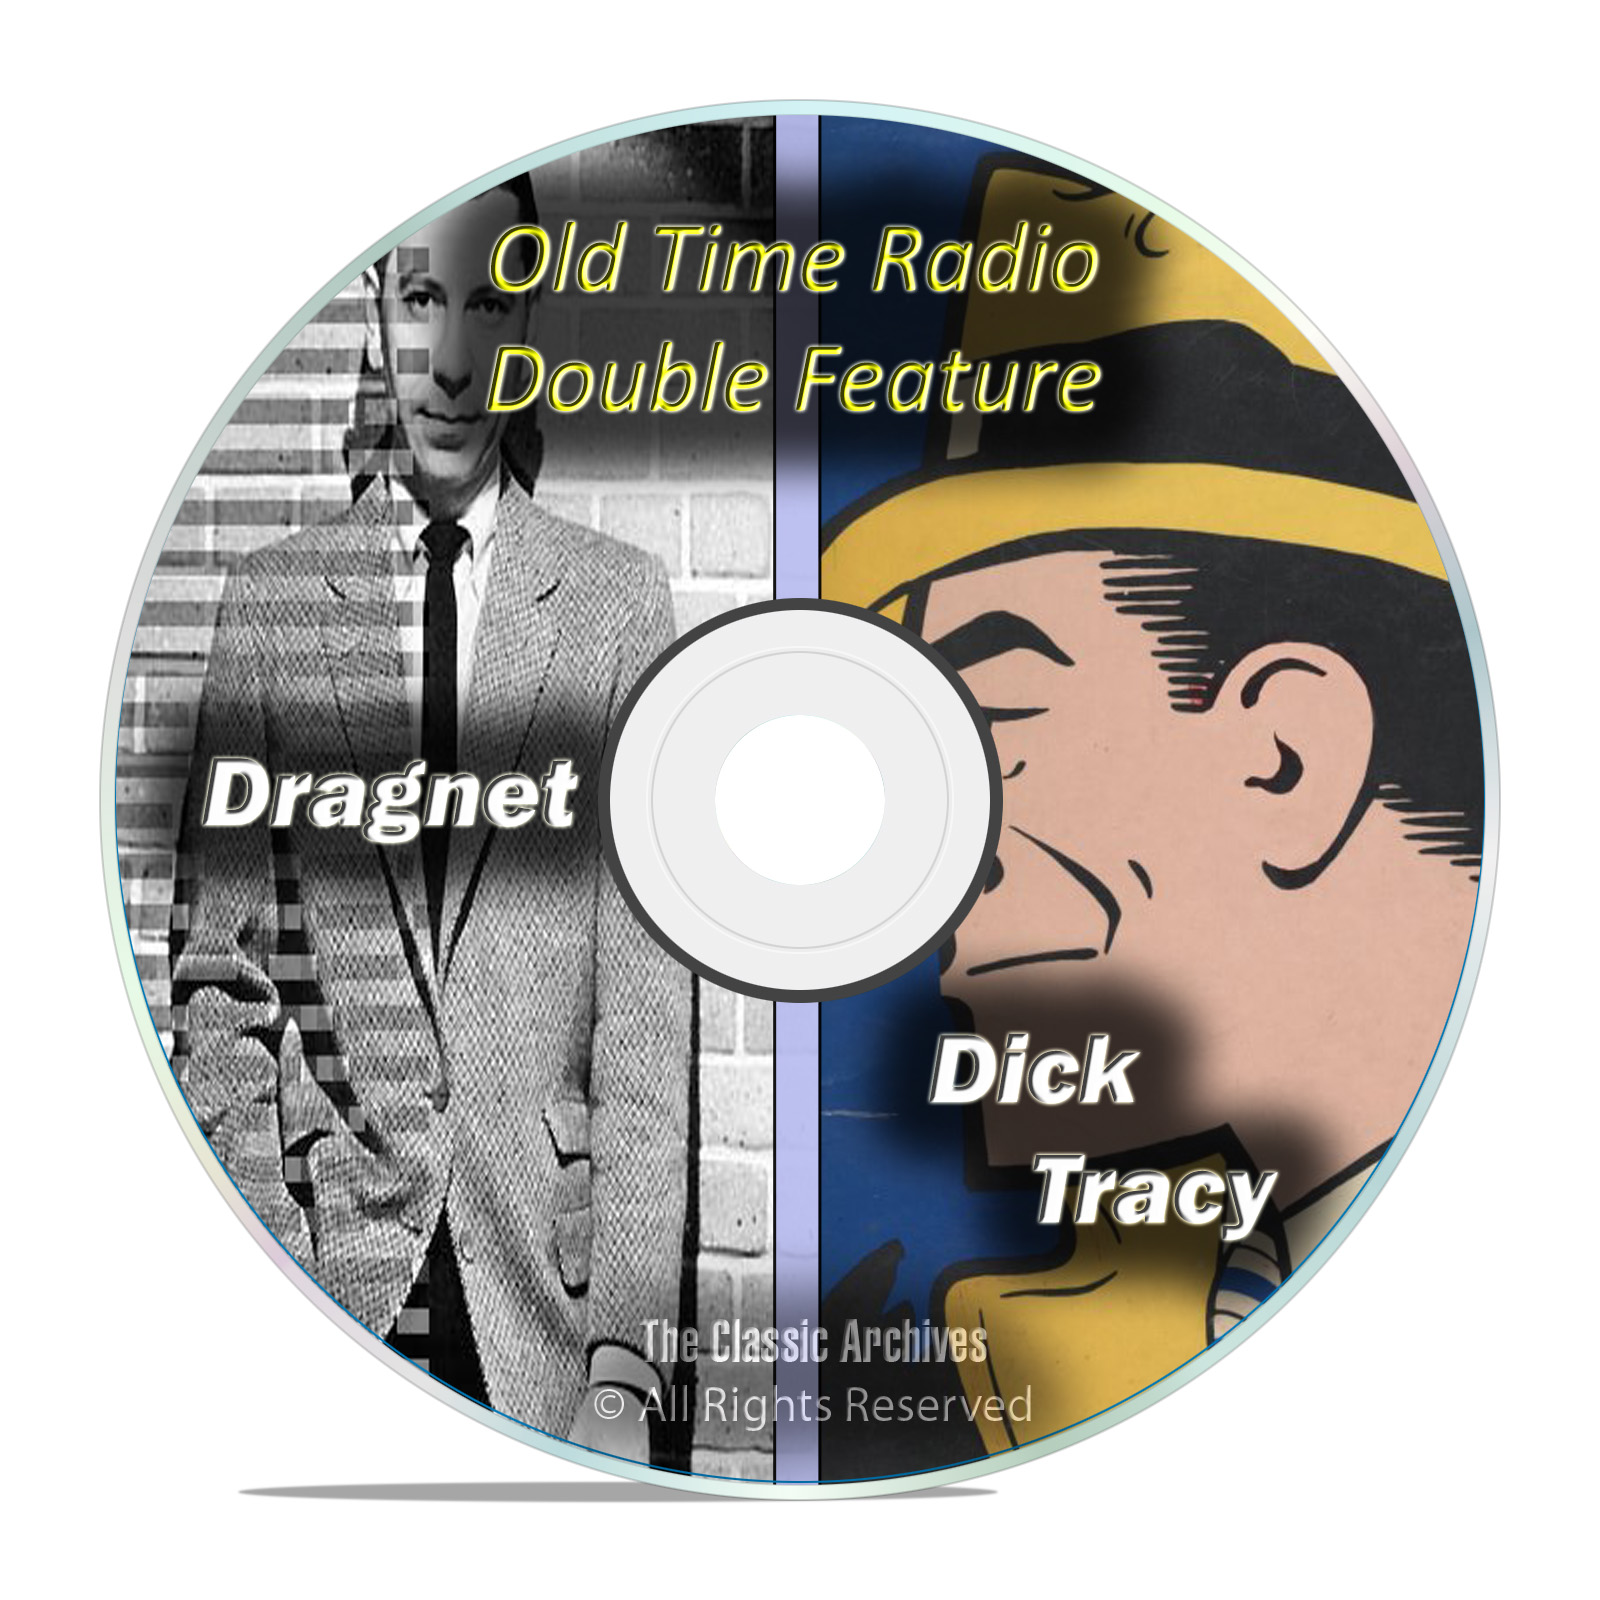 Dragnet, Dick Tracy, 443 Shows, ALL Known Episodes, Old Time Radio, OTR DVD